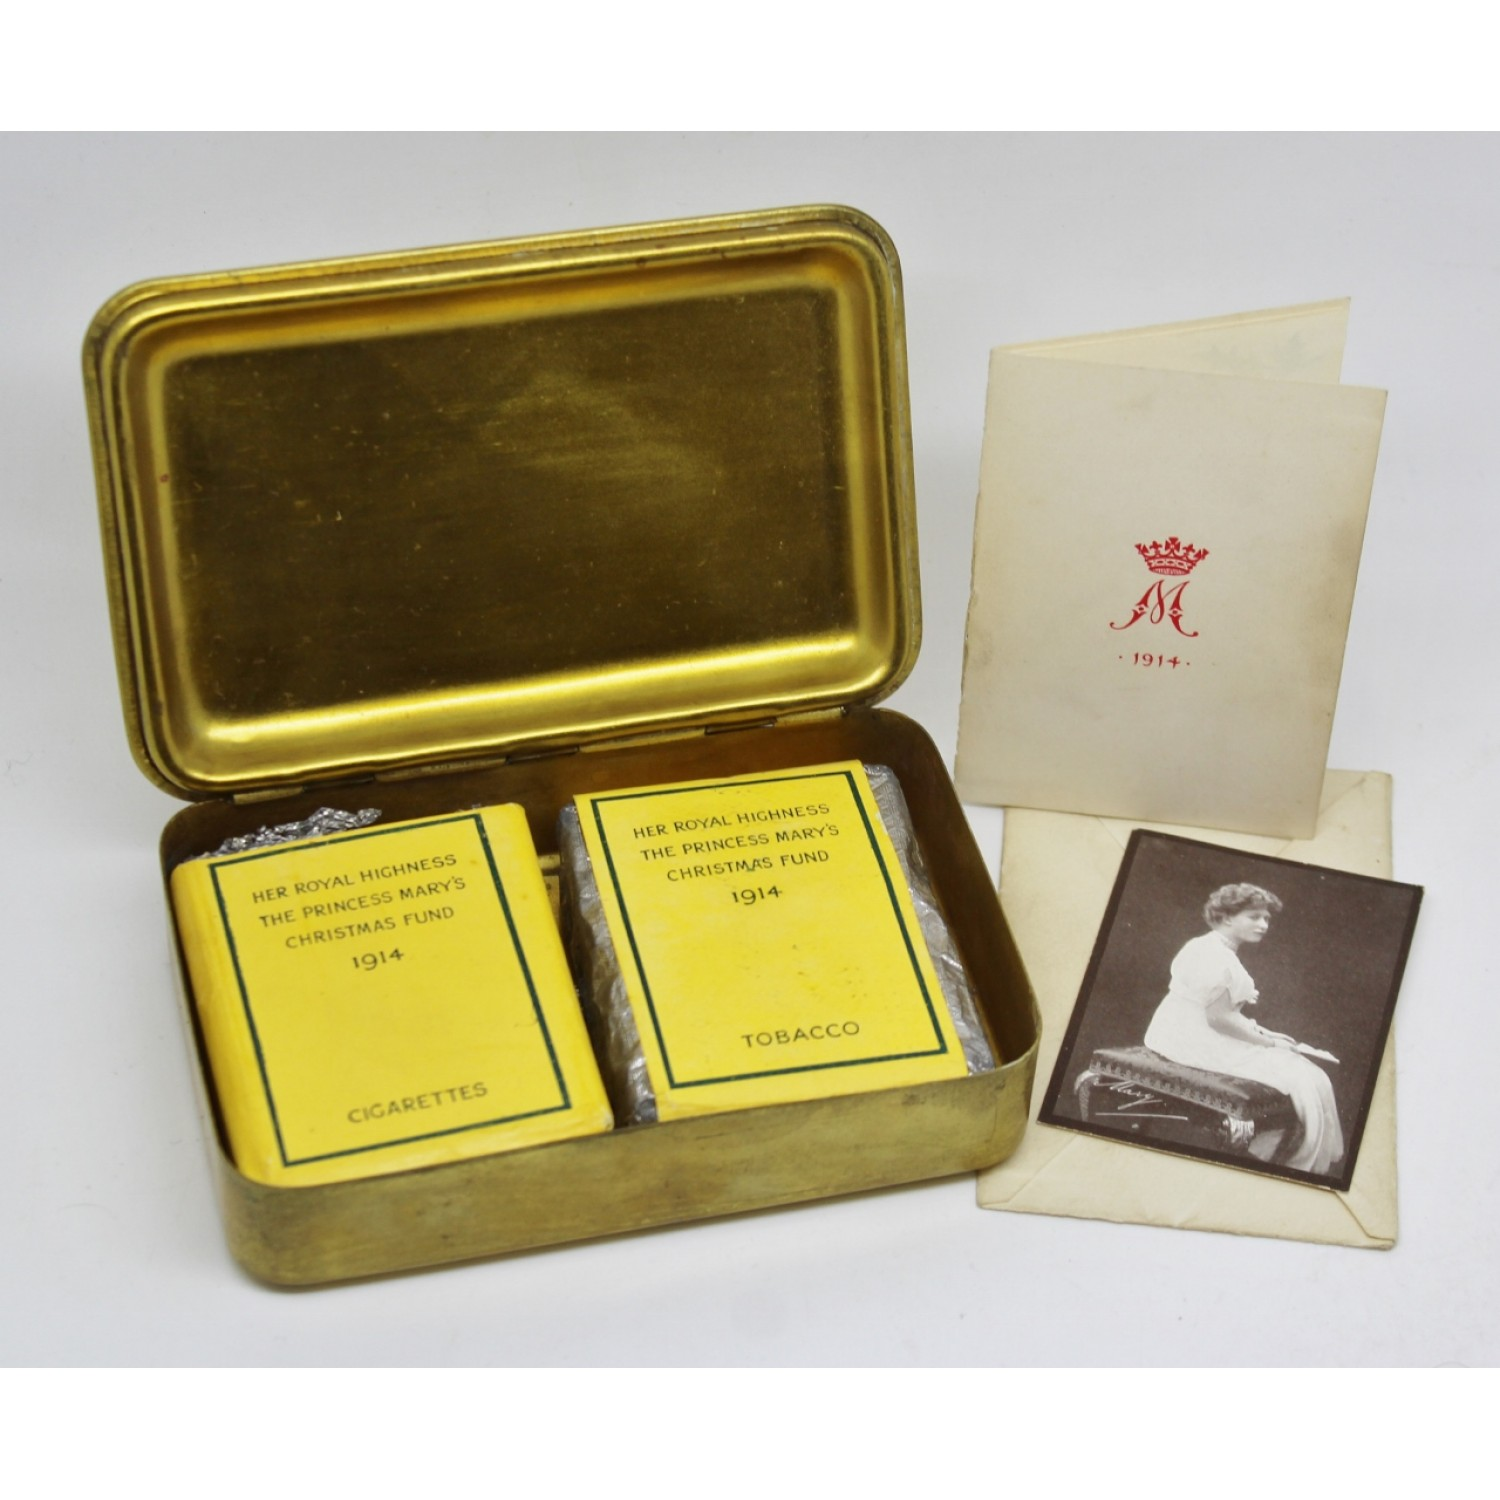 1914 princess mary christmas gift tin with contents cigarettes